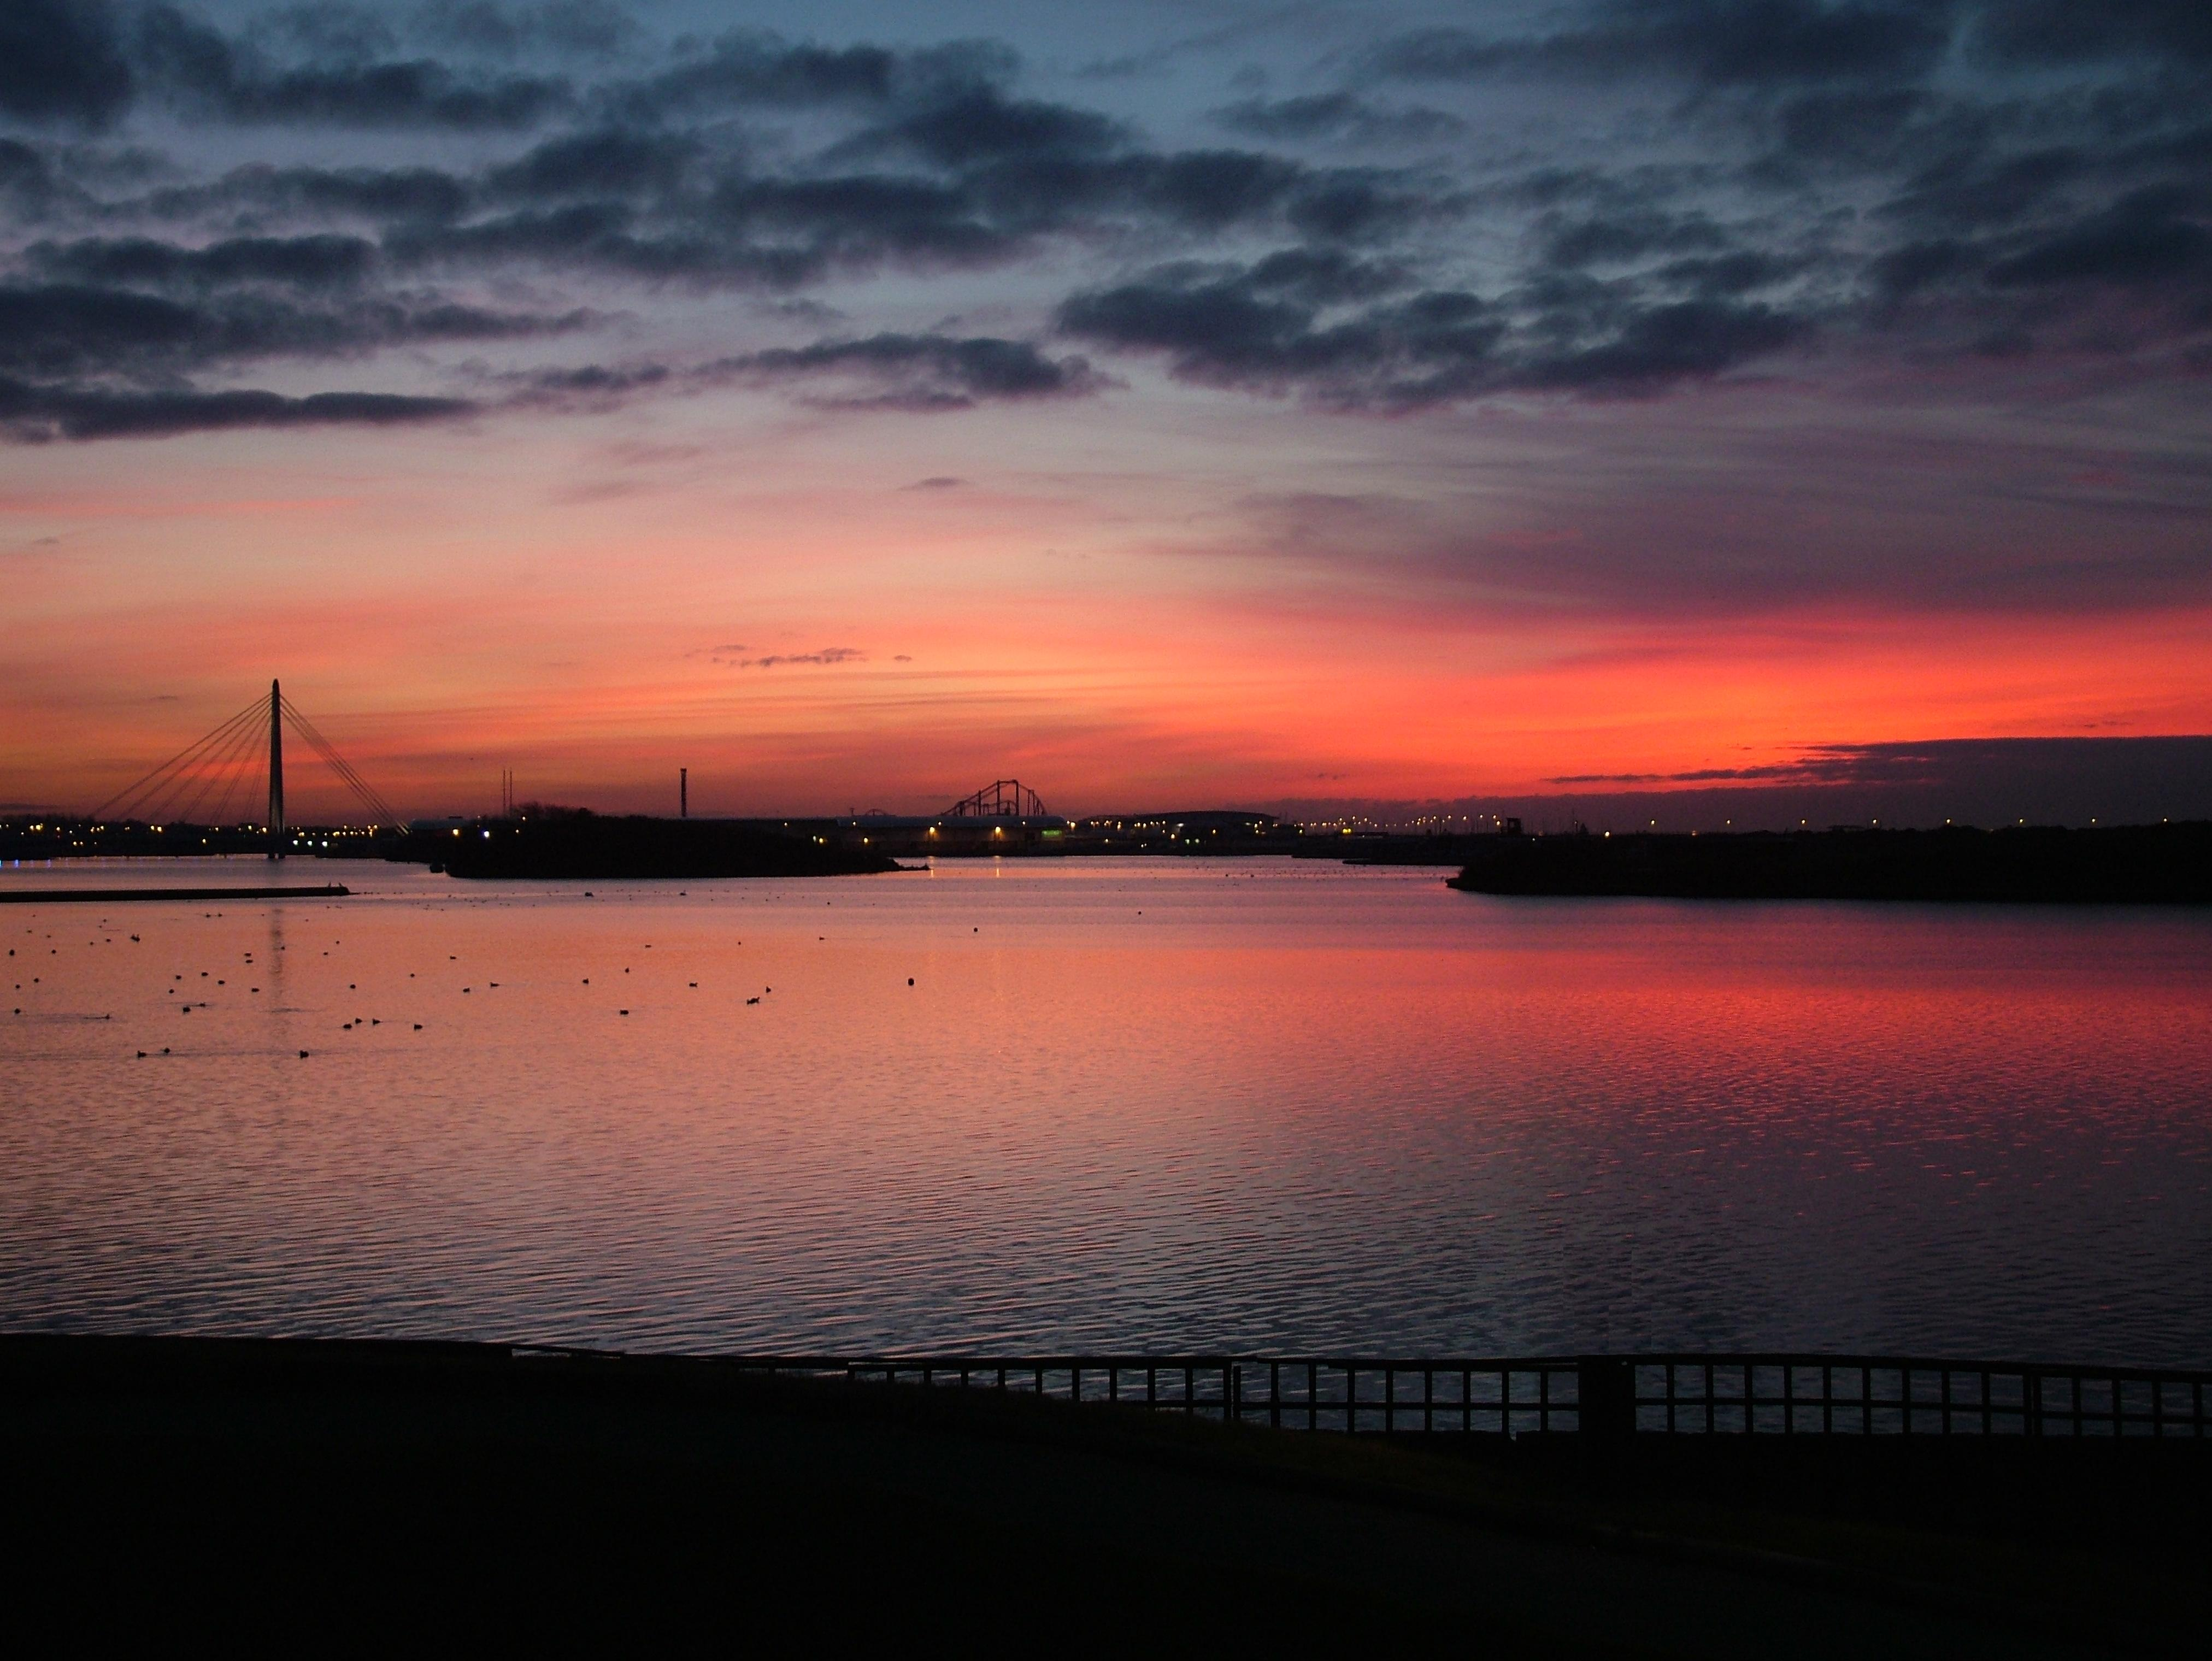 Picturesque view of Southport Marina at sunset